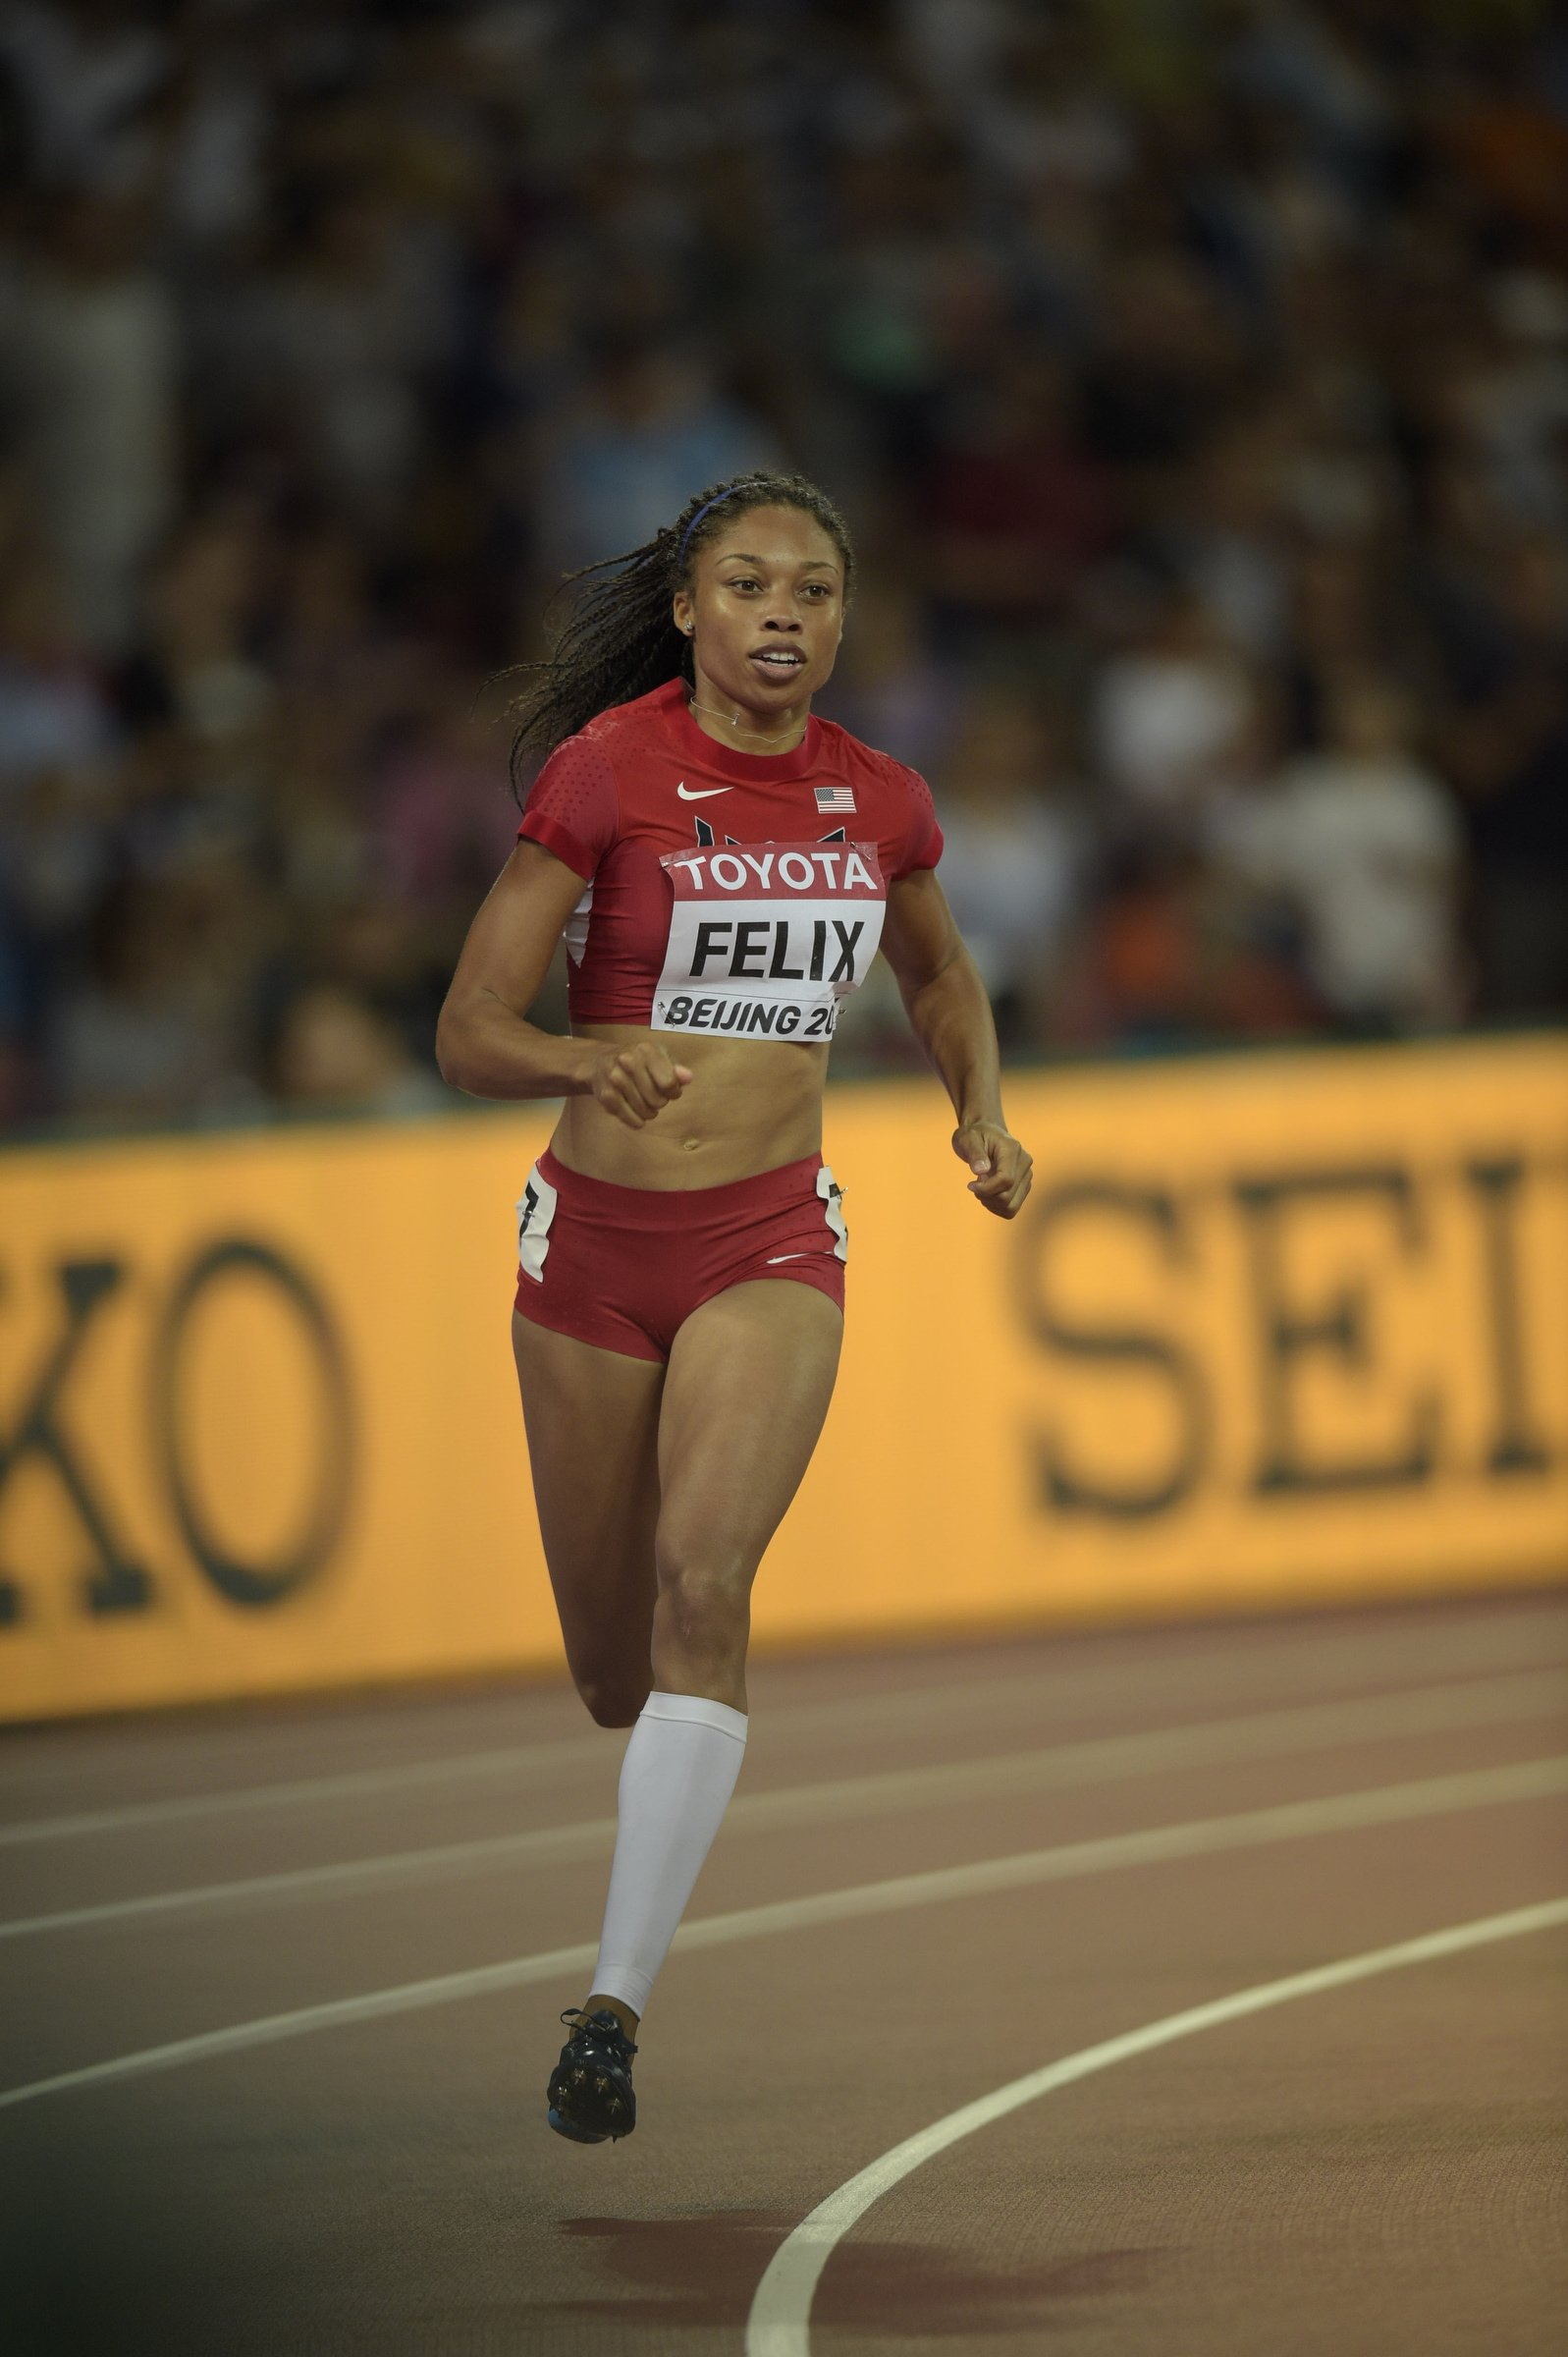 Allyson Felix (USA) advances with ease into the 400-meter semifinal with a 49.89 second performance.